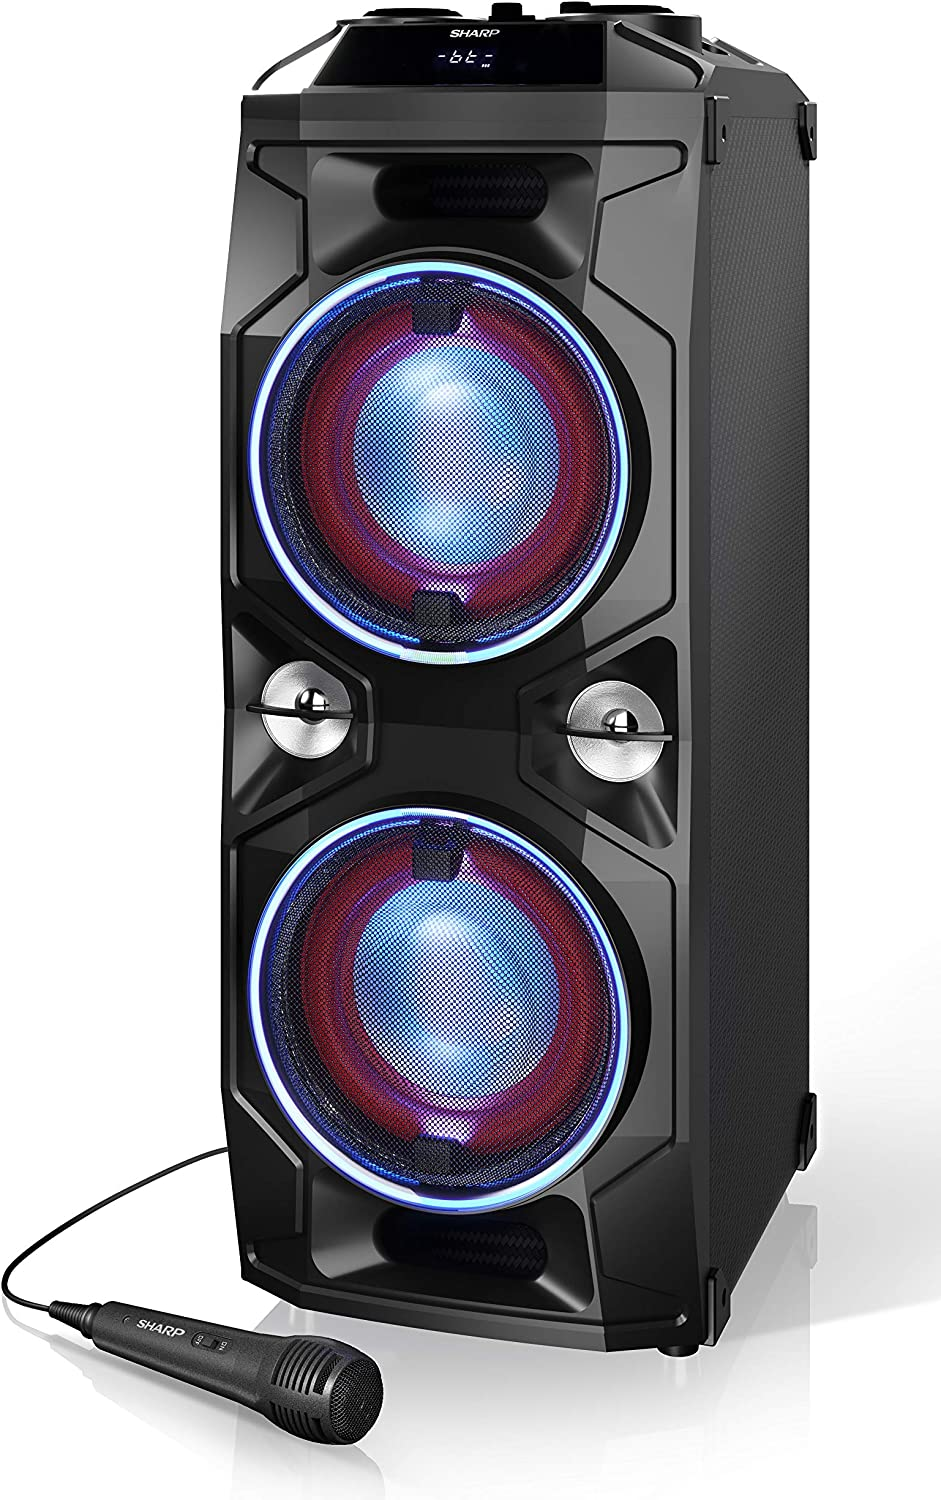 SHARP PS-940 Altavoces Bluetooth Karaoke Party con Mezclador Dj y Batería Recargable Incorporada, Tiempo de Reproducción 14 Horas, 2 x USB, Superbass, Karaoke, Luces LED Parpadeantes, 180 W